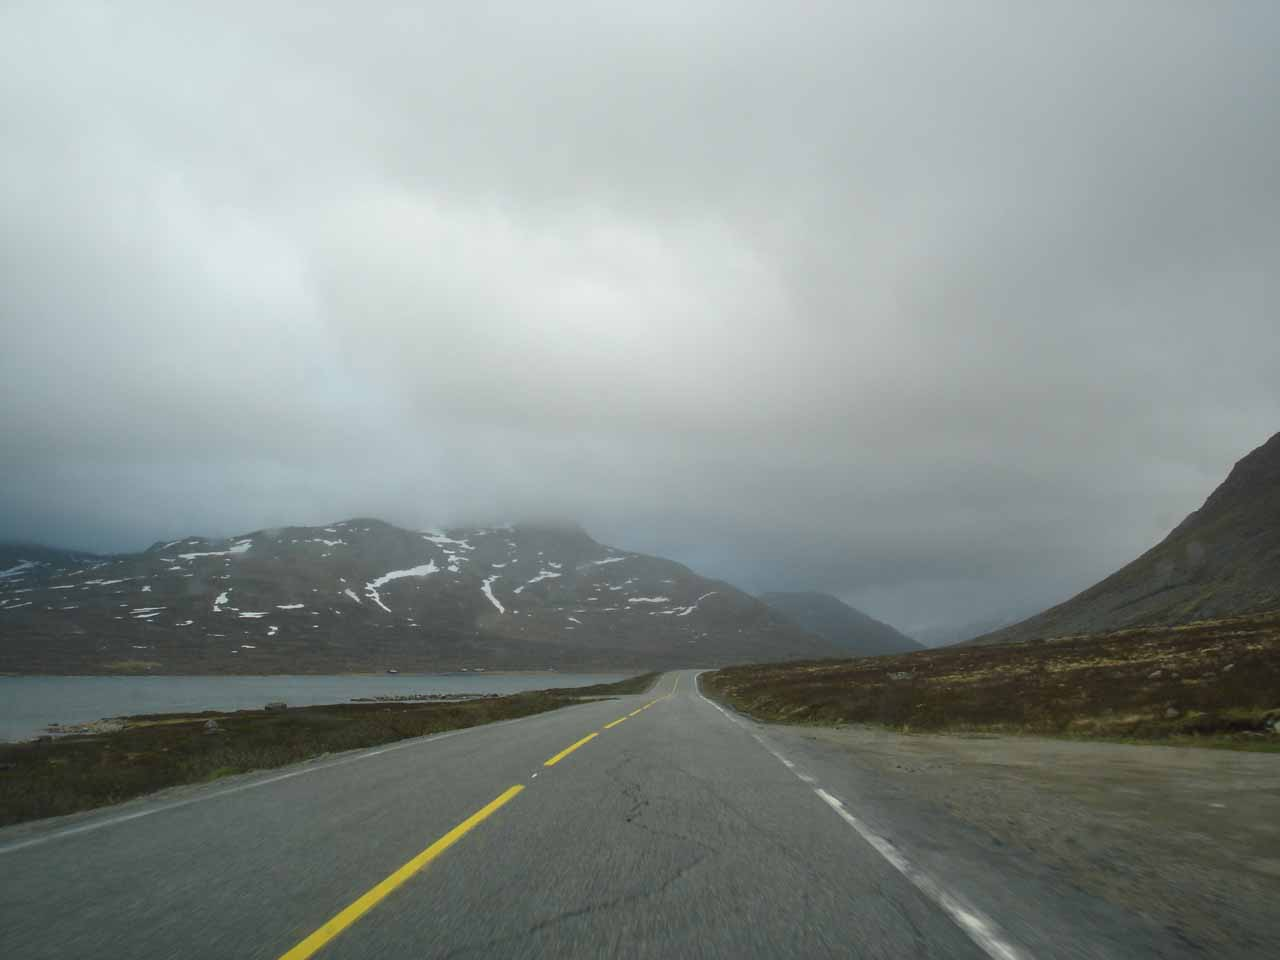 An enjoyable aspect of the drive on the Rv52 towards Hemsedal was the drive through the moors alongside some highland lakes